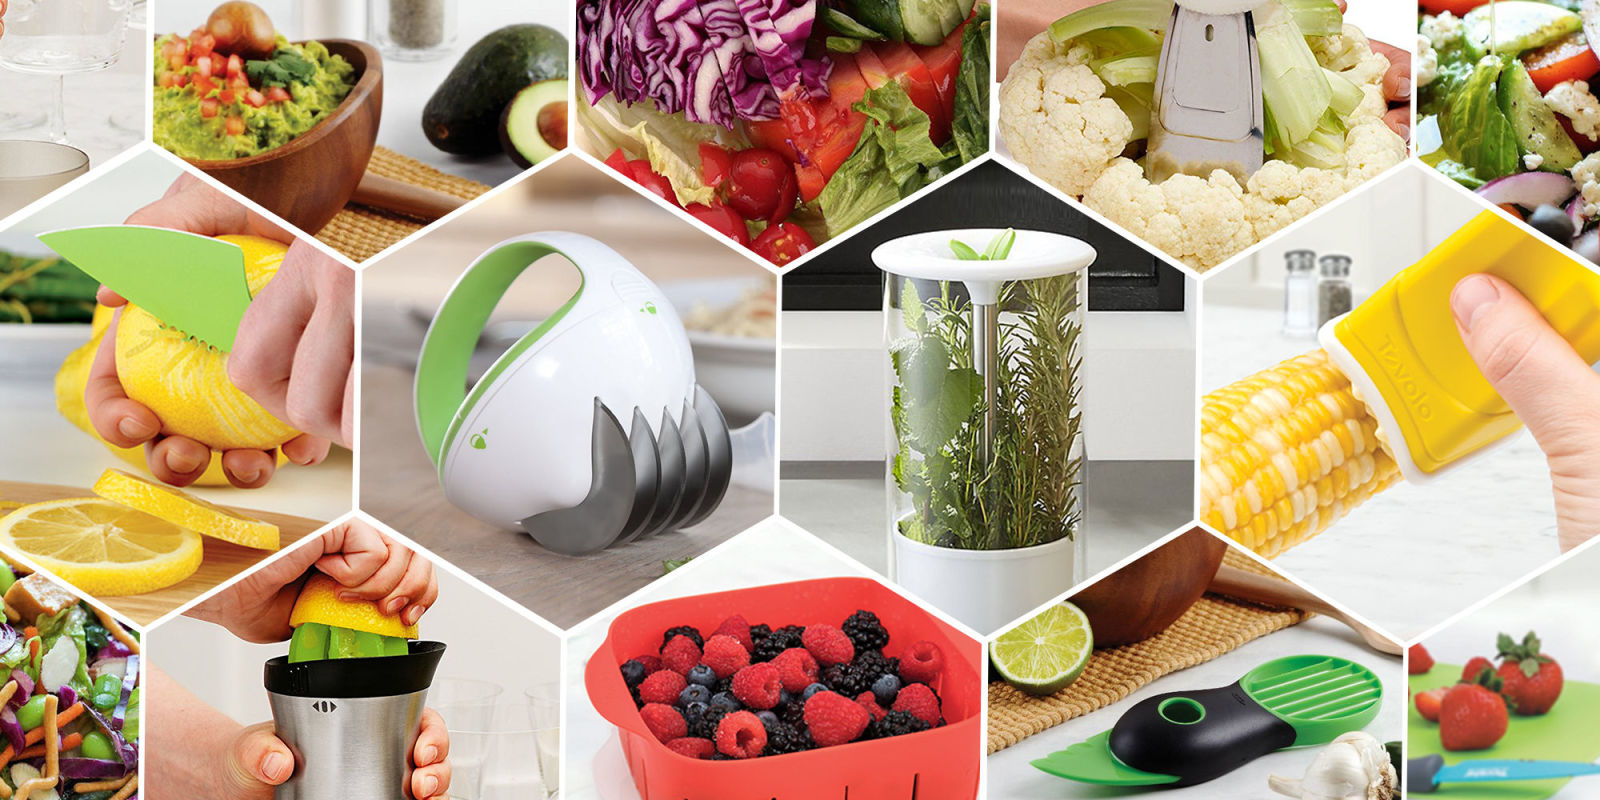 9 Kitchen Gadgets That Make Cooking Easier And More Enjoyable